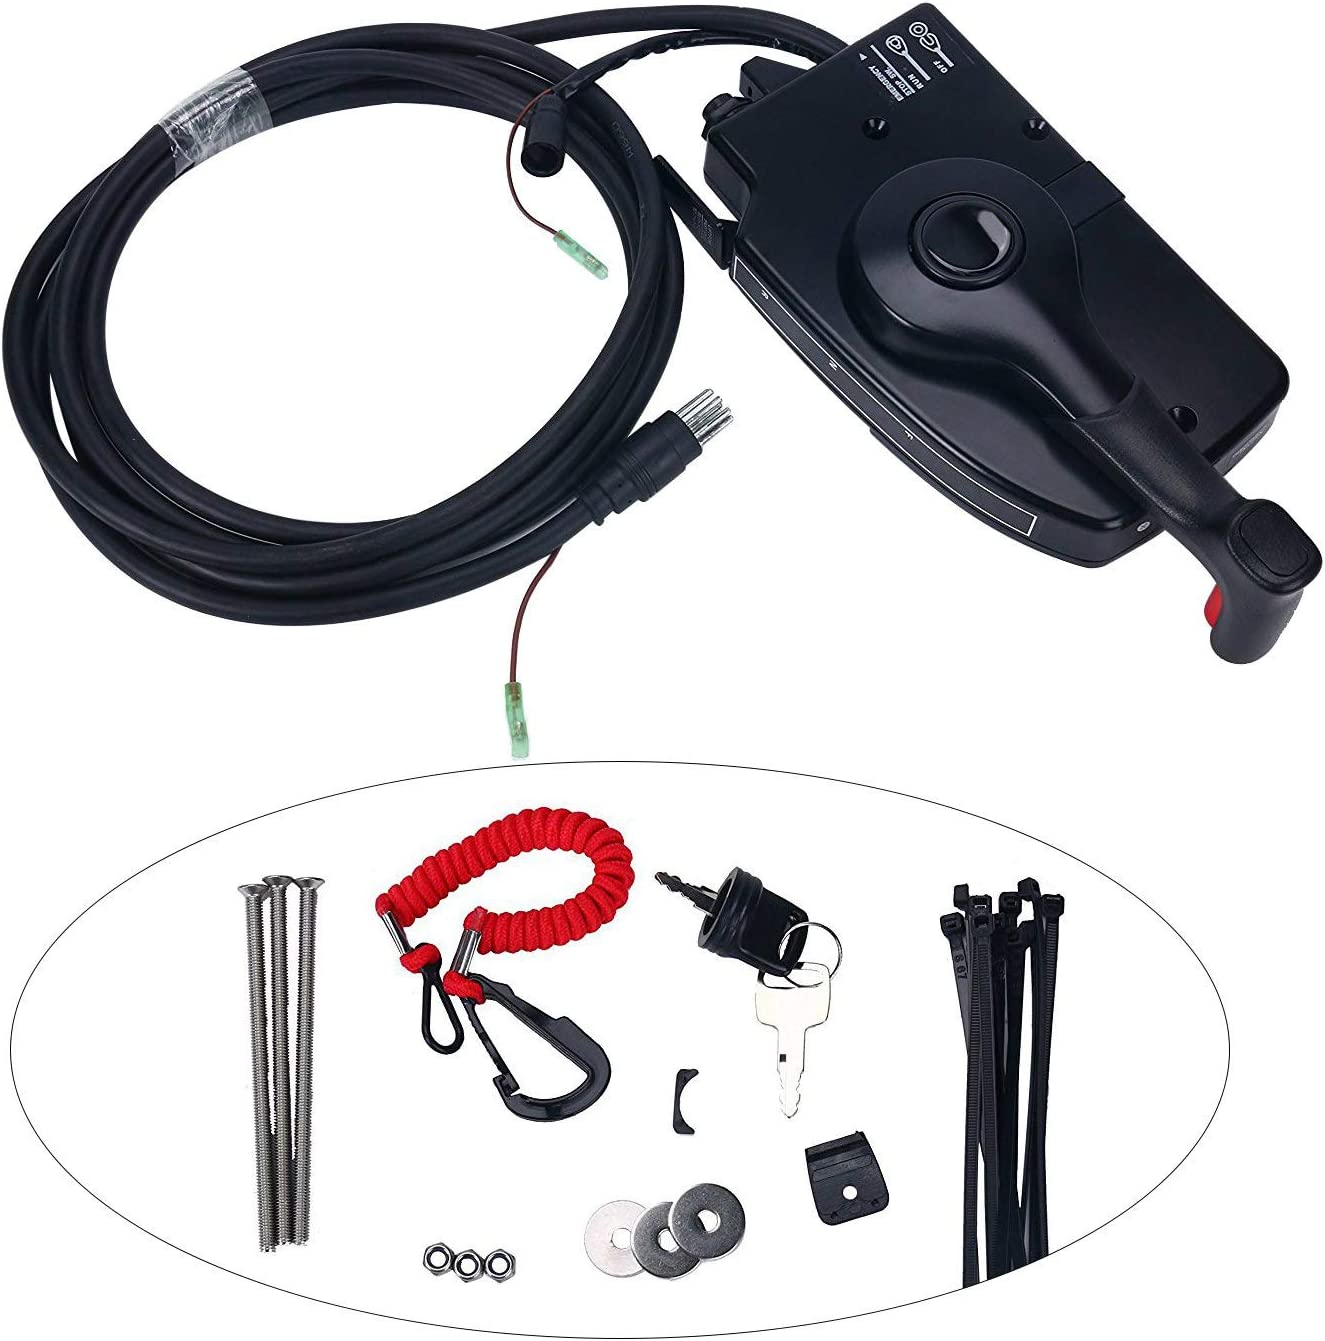 Boat Motor Side Mount Remote Control Box With 8 Pin Cable 15ft For Mercury Black